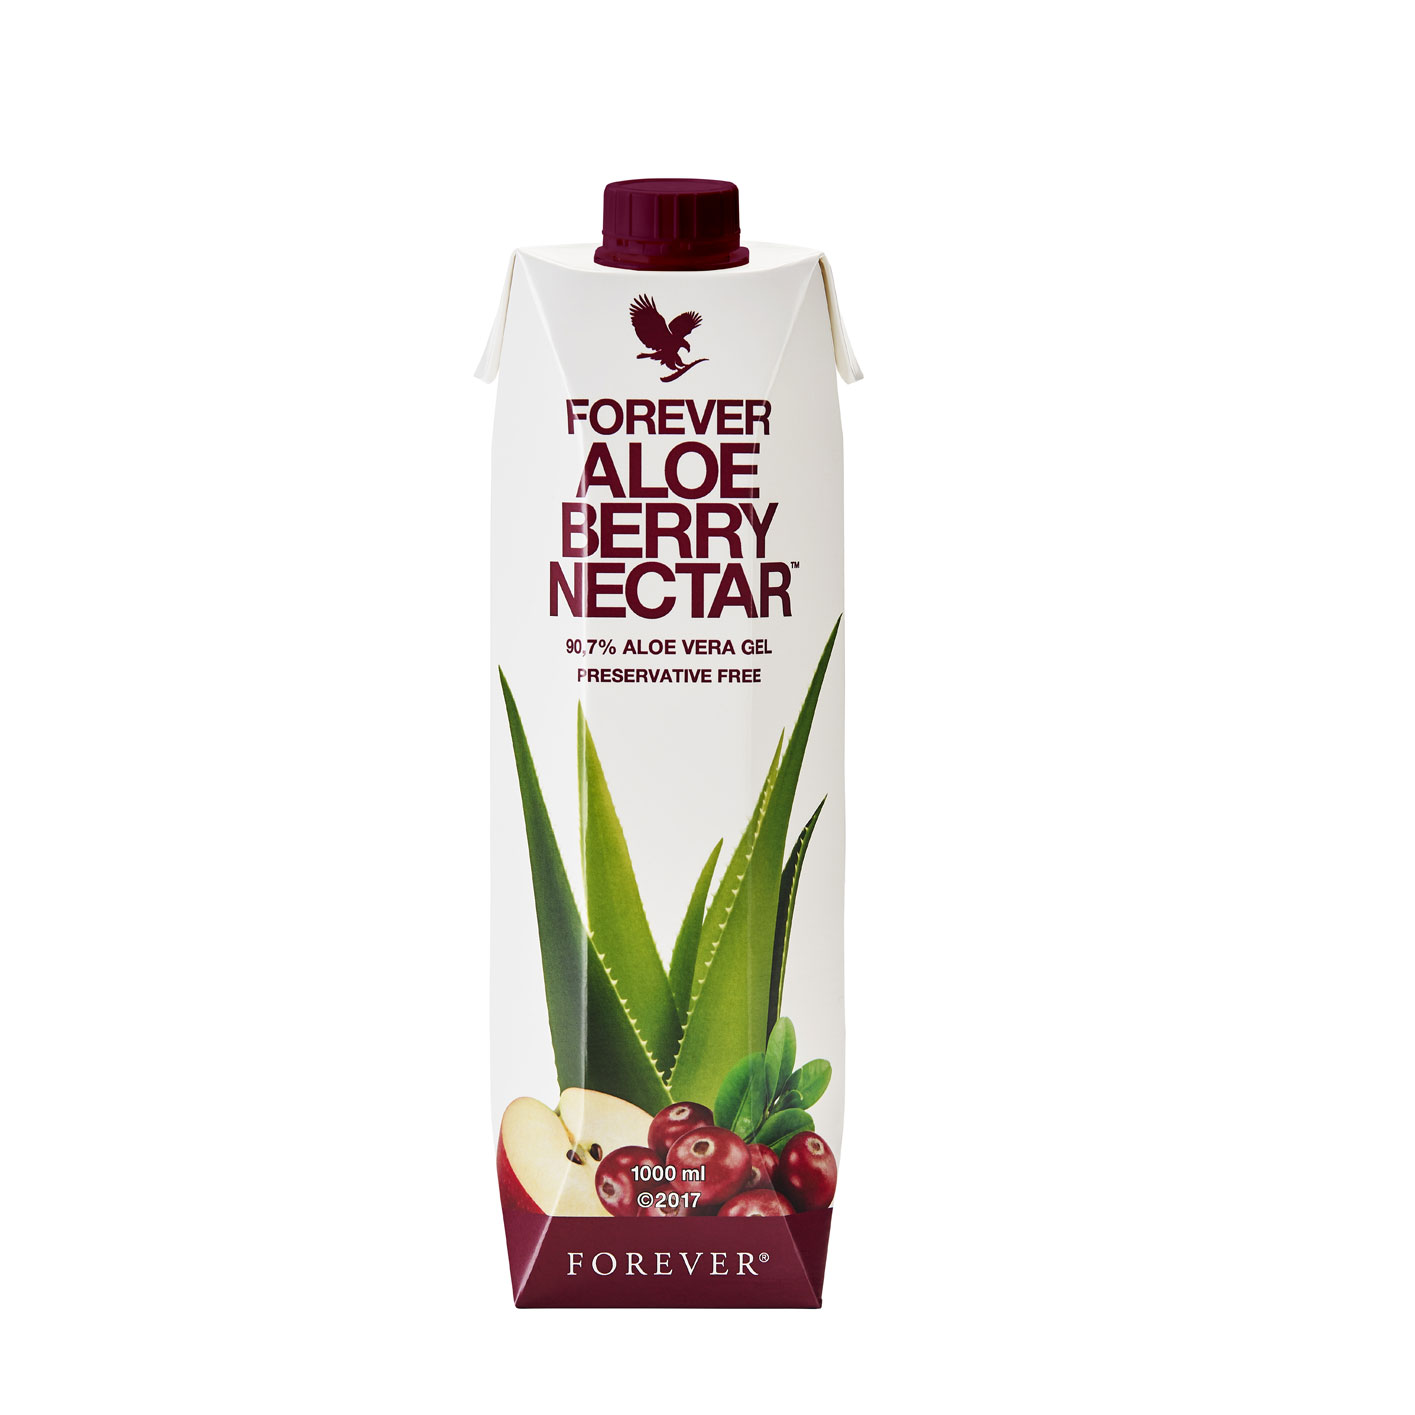 A burst of cranberry and sweet apple provides a sweet yet tangy flavour, and antioxidant vitamin C contributes to the protection of cells from oxidative stress. These amazing ingredients, plus 90.7% pure inner leaf aloe vera gel, makes Forever Aloe Berry Nectar a powerful choice. <b>Warning</b> If you are pregnant, breastfeeding, planning pregnancy, taking any medications or are under medical supervision, please consult a doctor or healthcare professional before use.